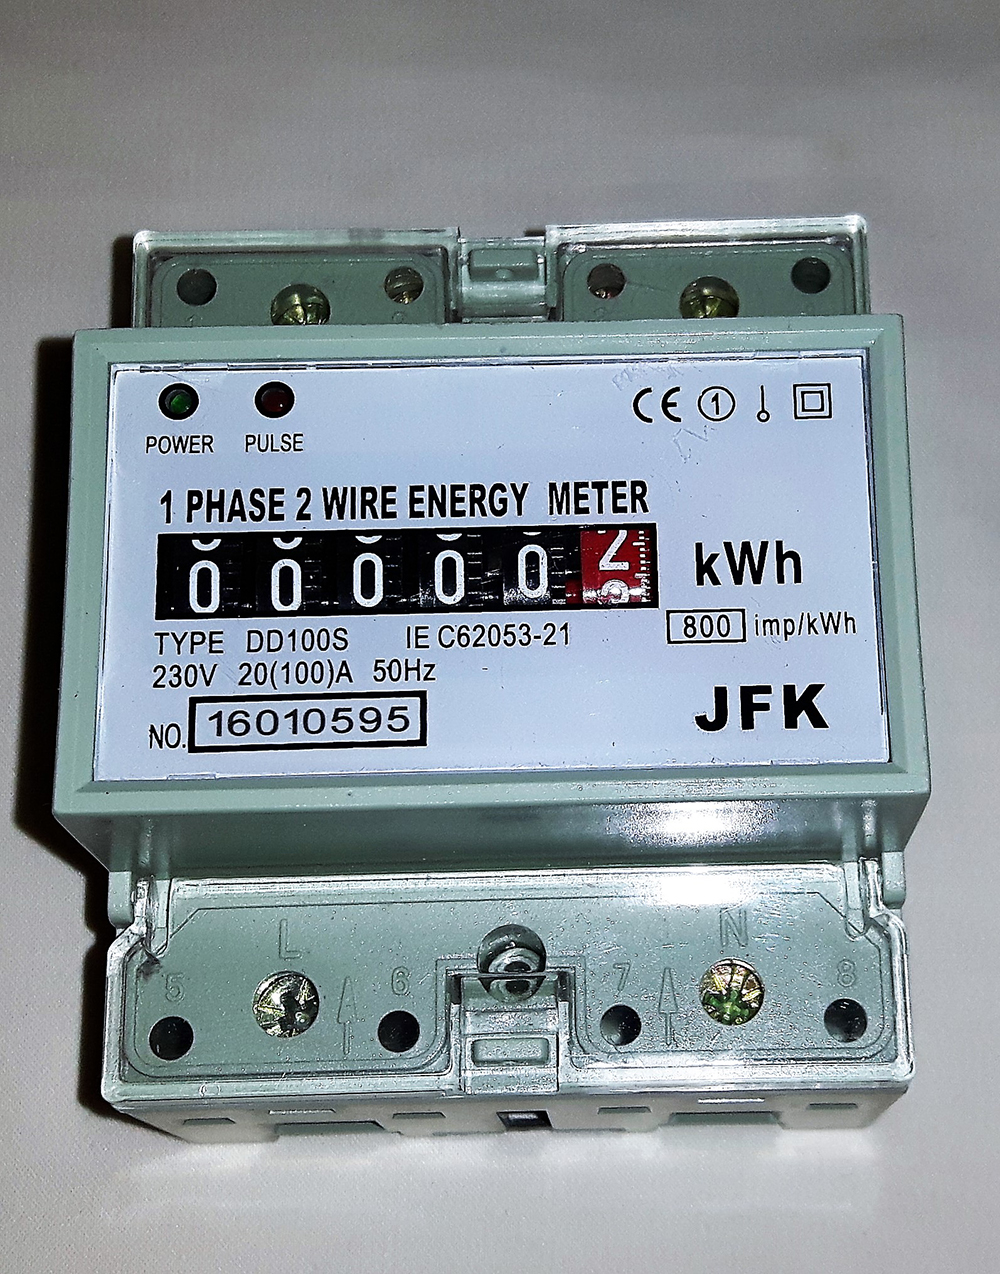 Kilowatt Hour Meter : Kilowatt hour power consumption meter jfk electrical